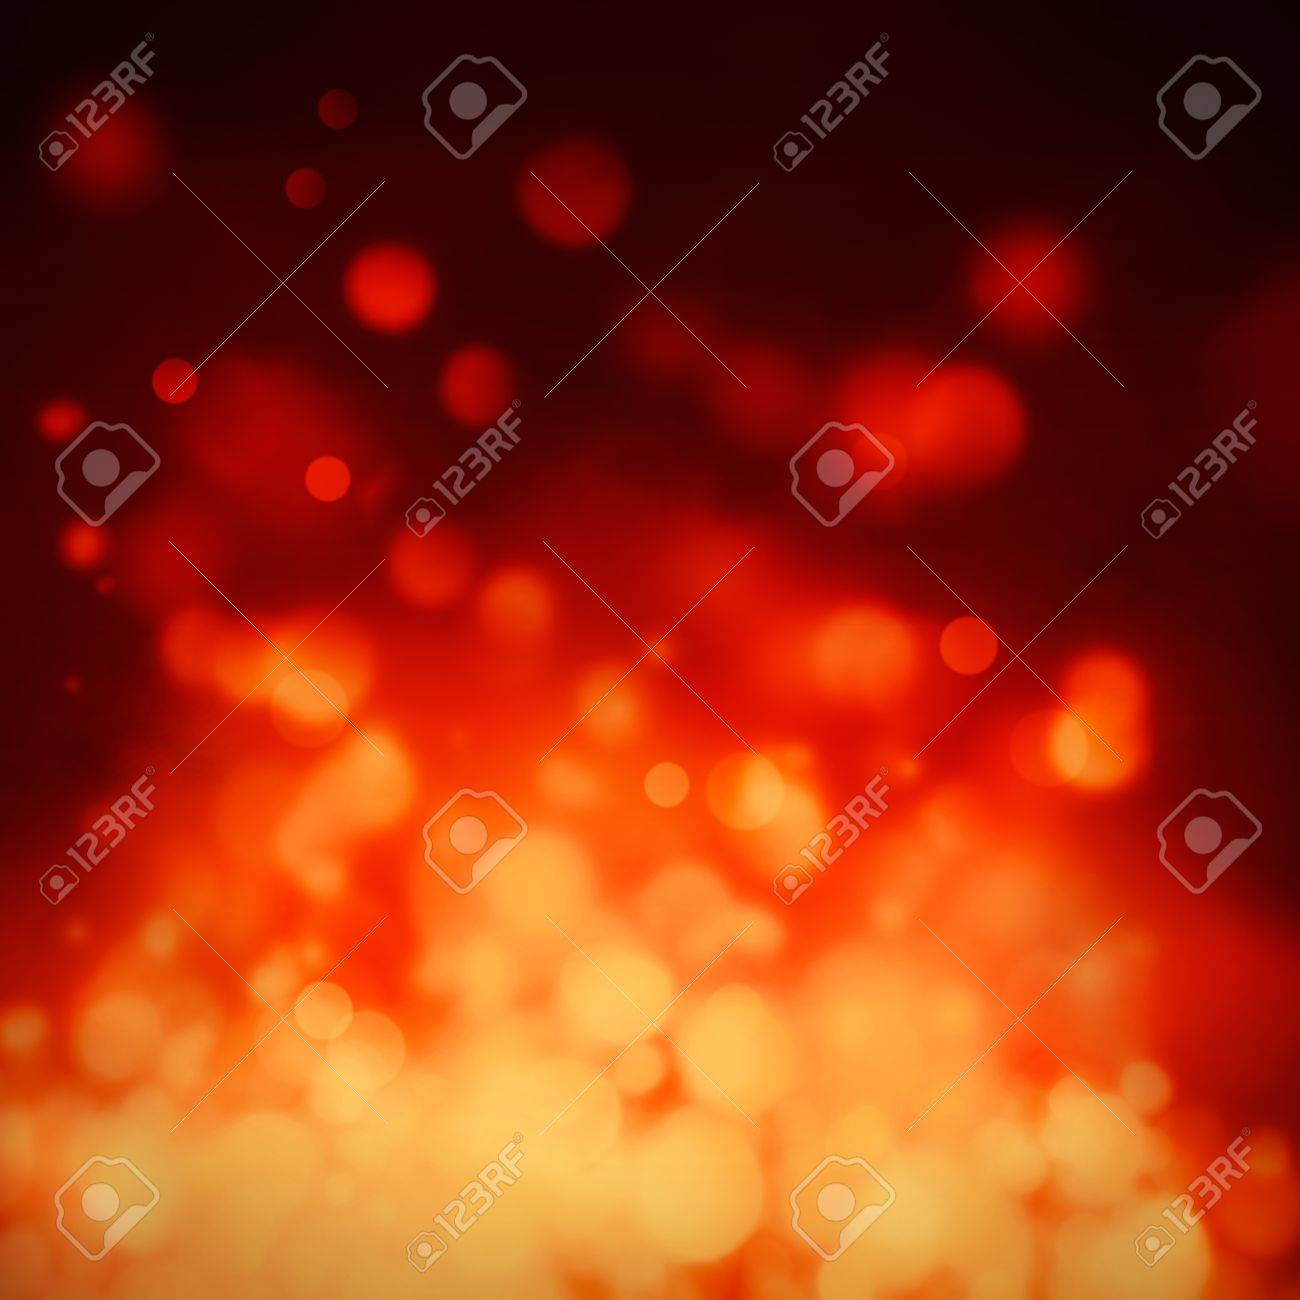 Red and gold  Festive Christmas background. Elegant abstract background with bokeh defocused lights and stars Stock Photo - 16432641